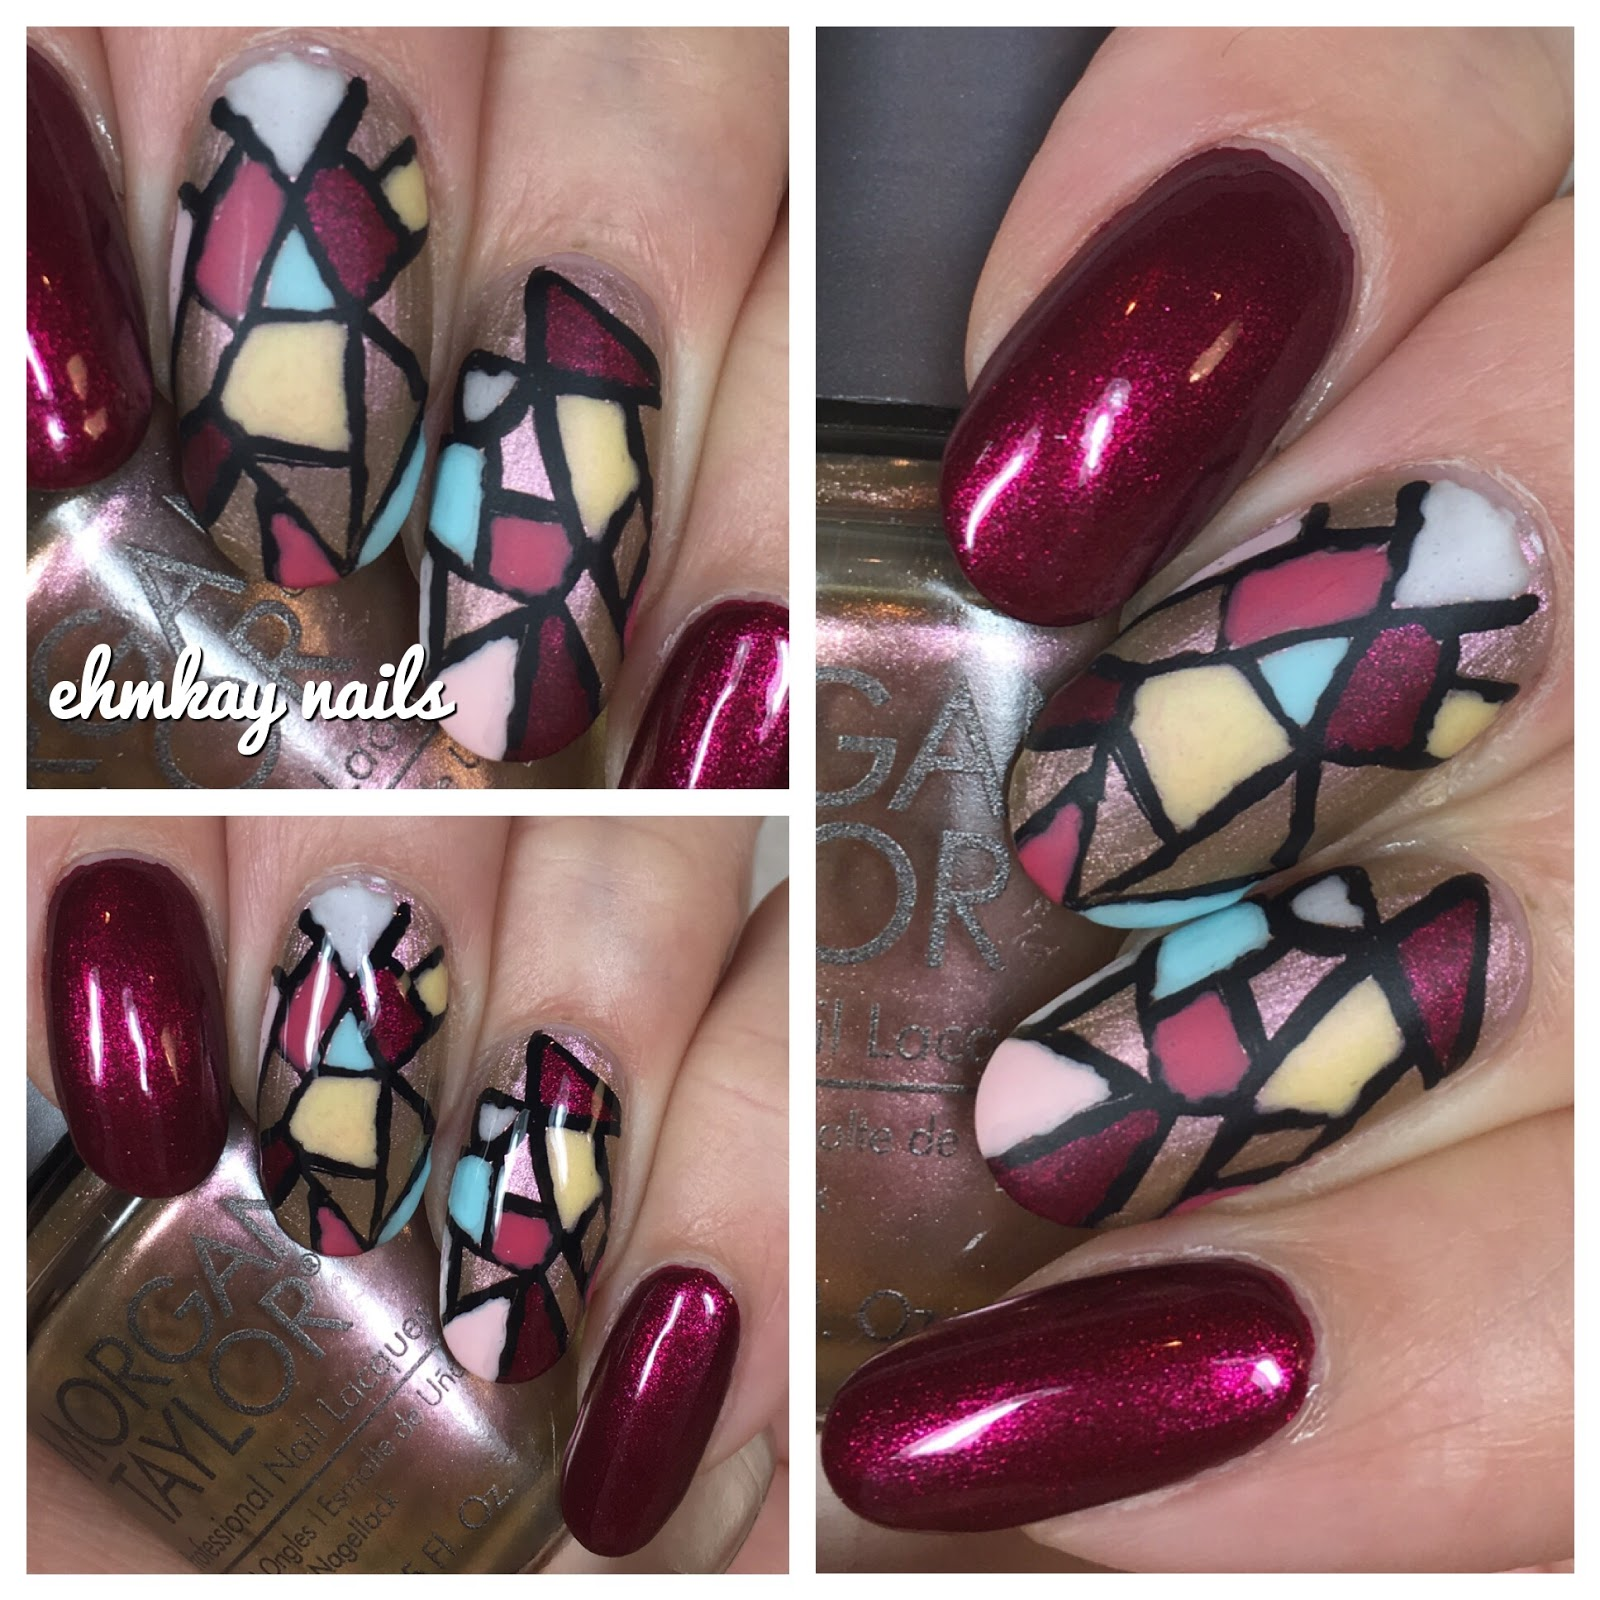 Stained Glass Nail Art: Ehmkay Nails: Morgan Taylor Beauty And The Beast Stained